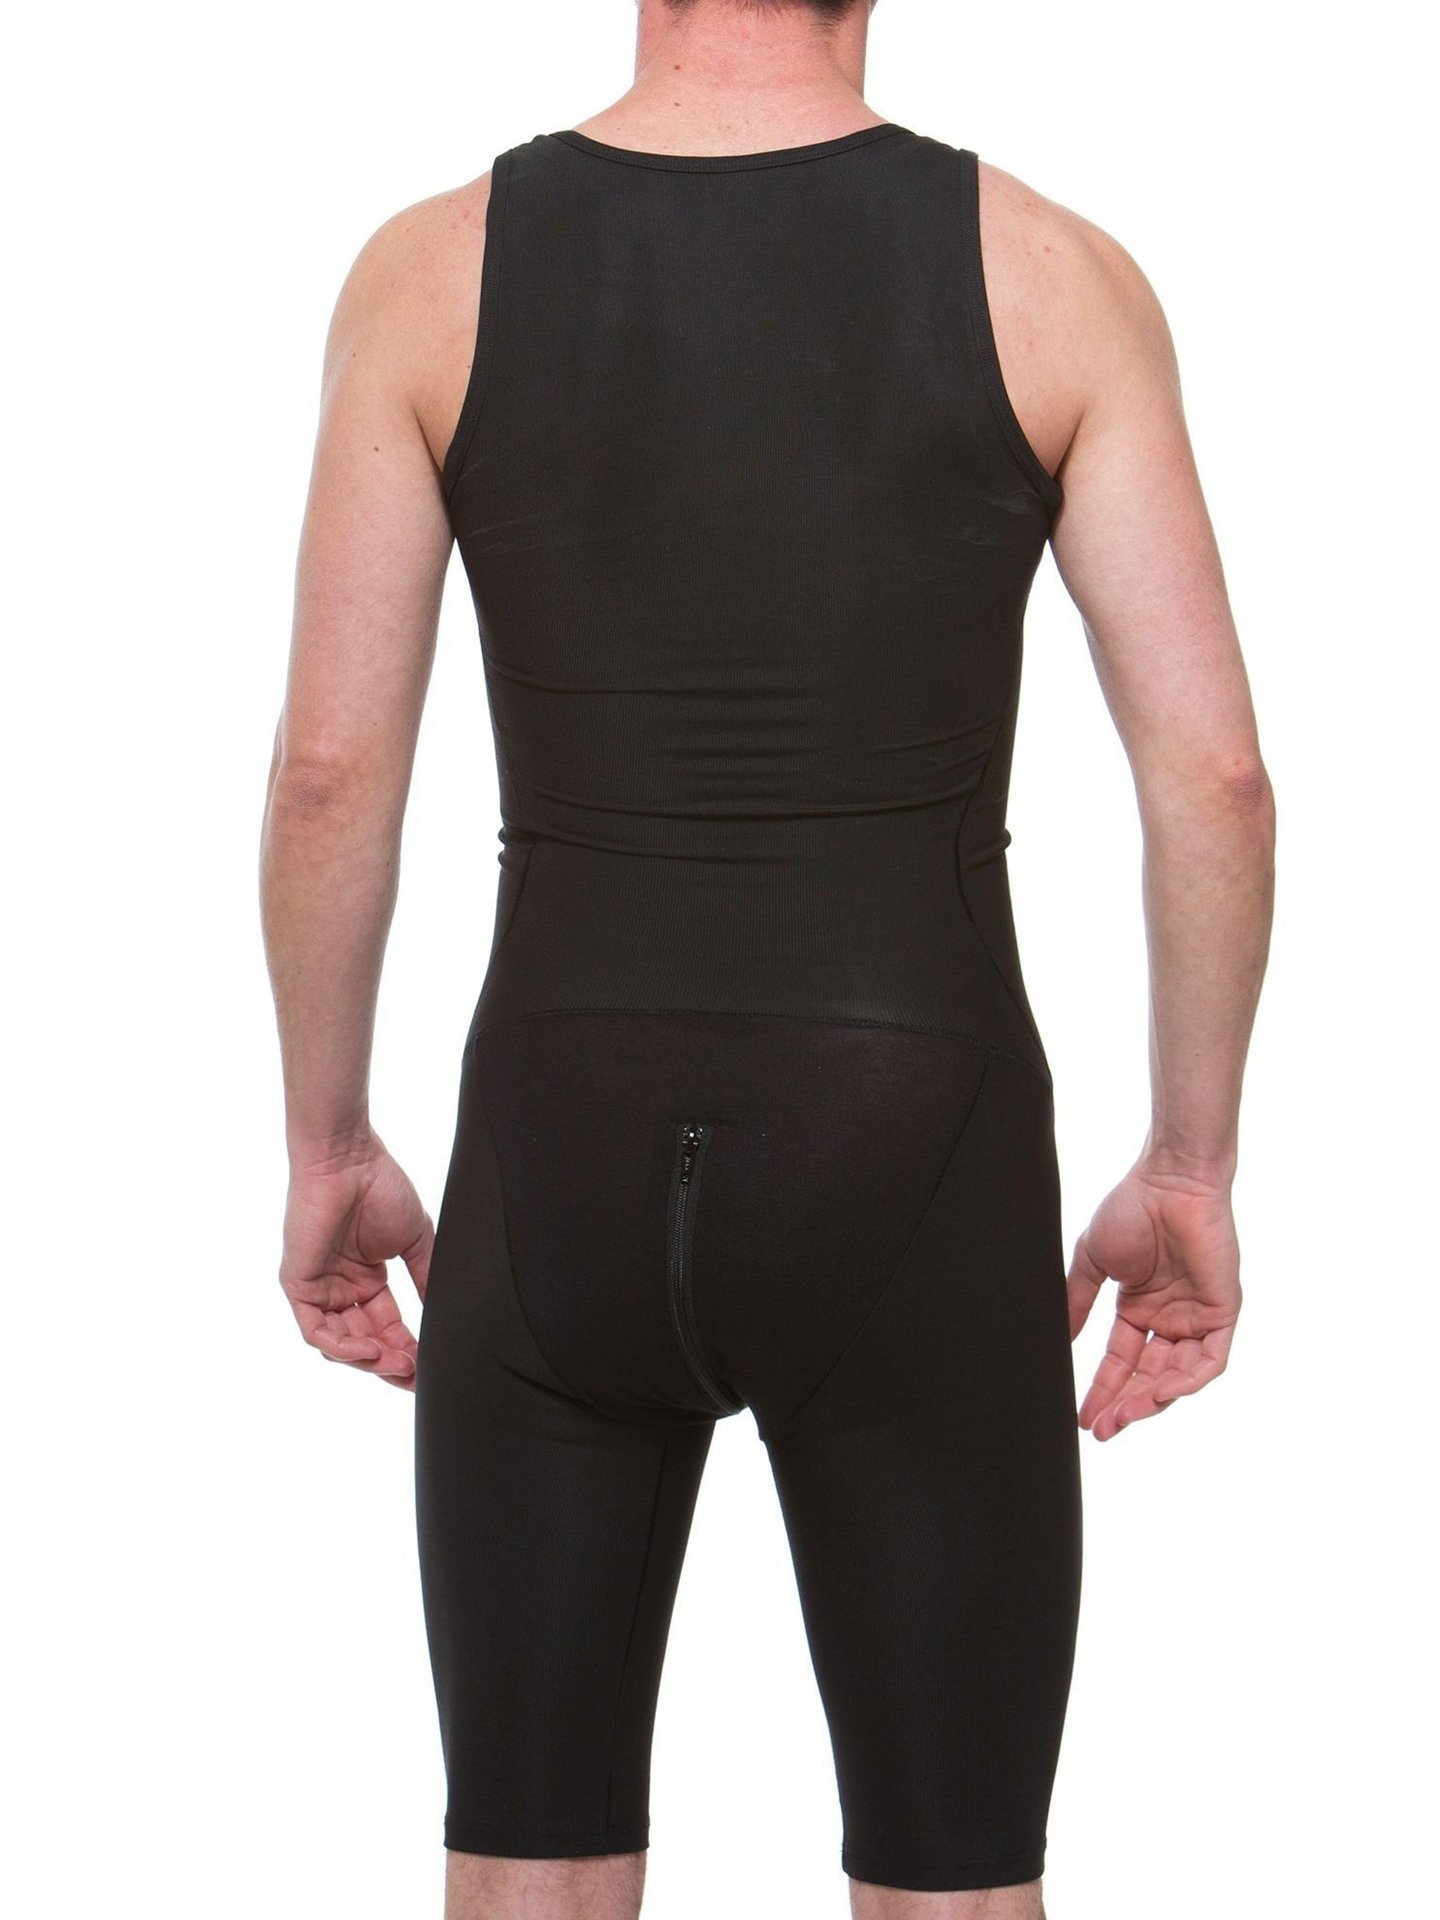 compression body shaper binders to trans people